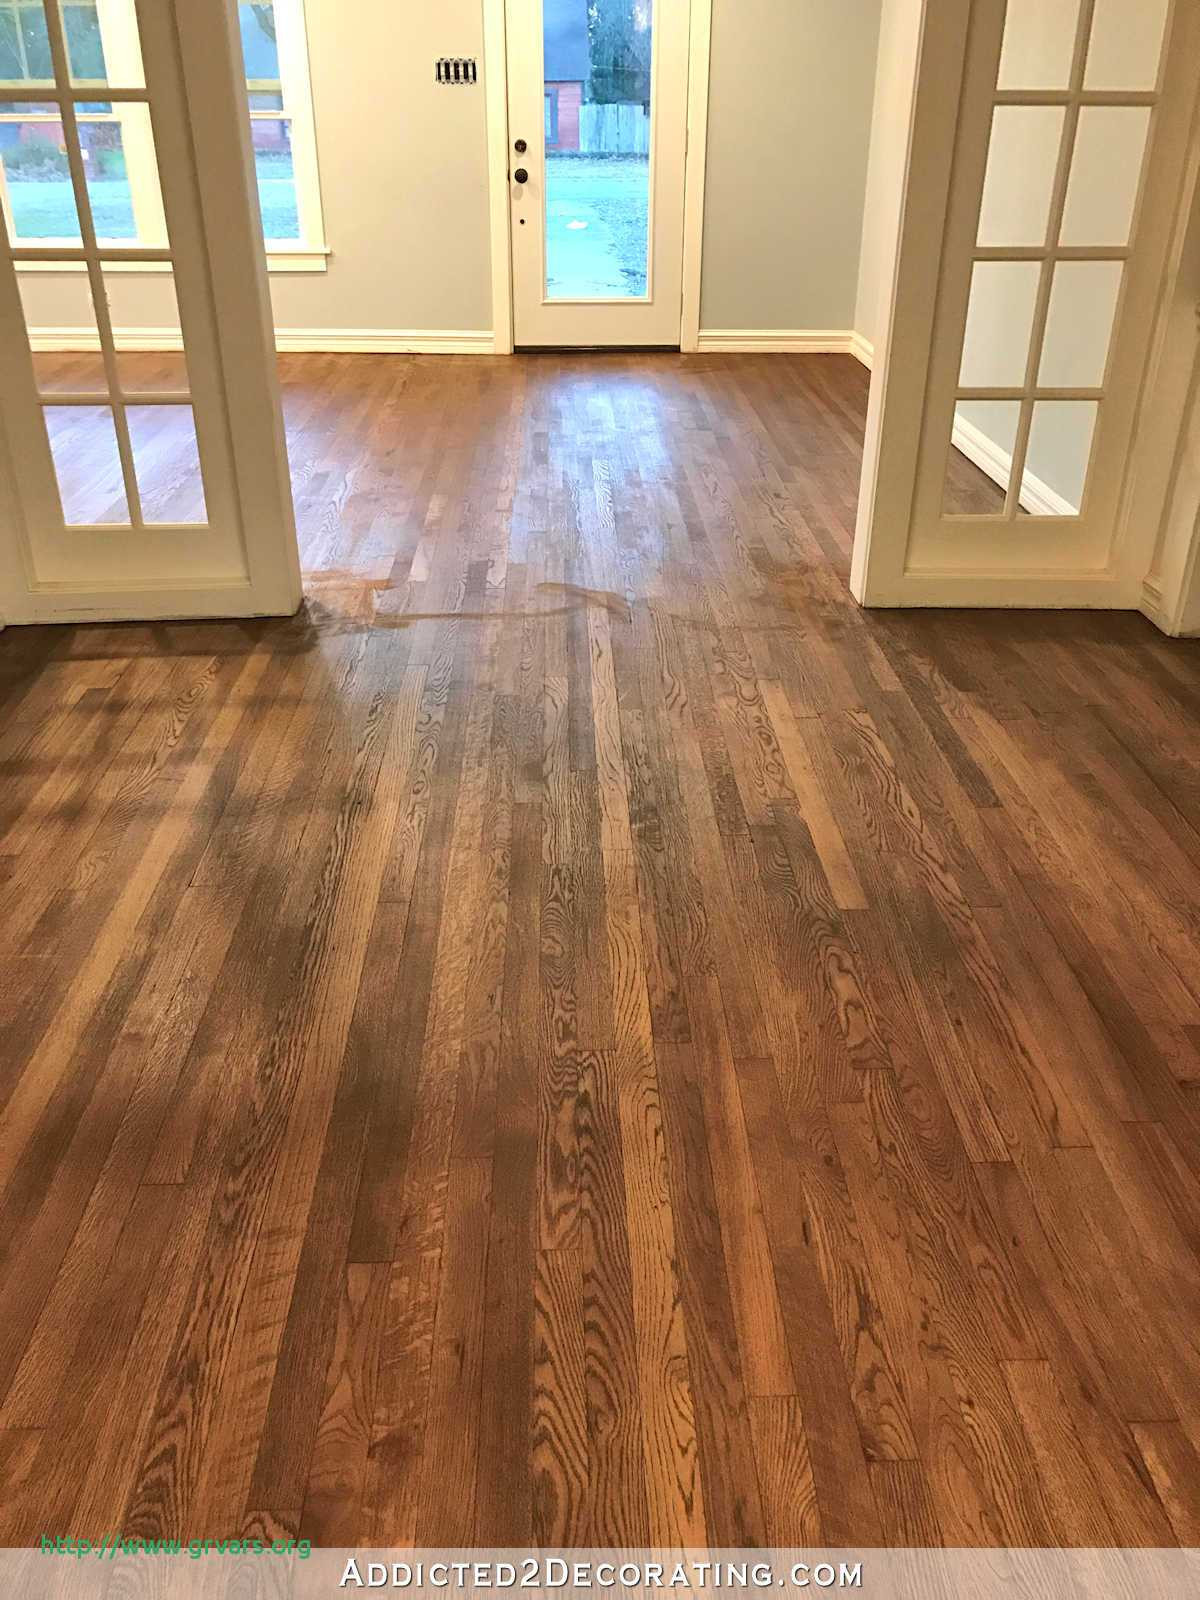 hardwood floor care kit of 15 charmant how to seal a hardwood floor ideas blog throughout staining red oak hardwood floors 9 stain on entryway and music room floors